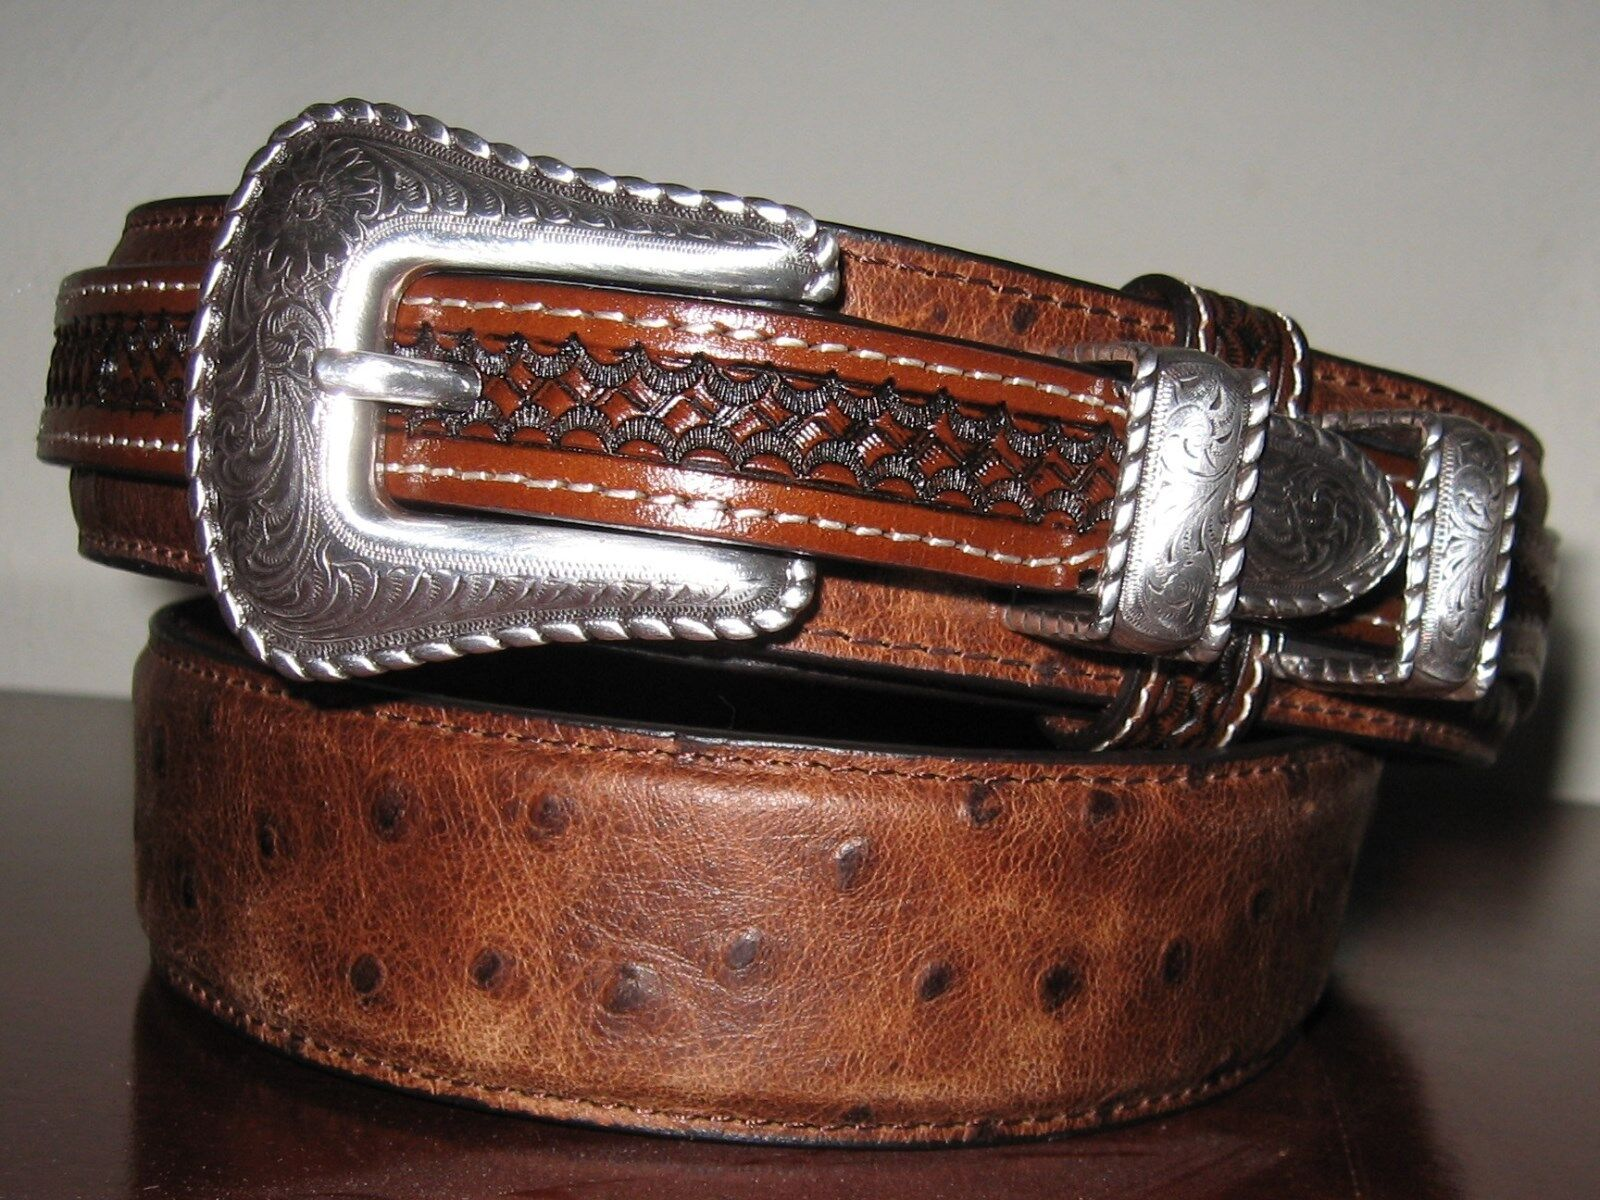 WESTERN LEATHER OSTRICH STAMPED UNISEX BELT RANGER 1 3 8 RODEO BELT SZ 36